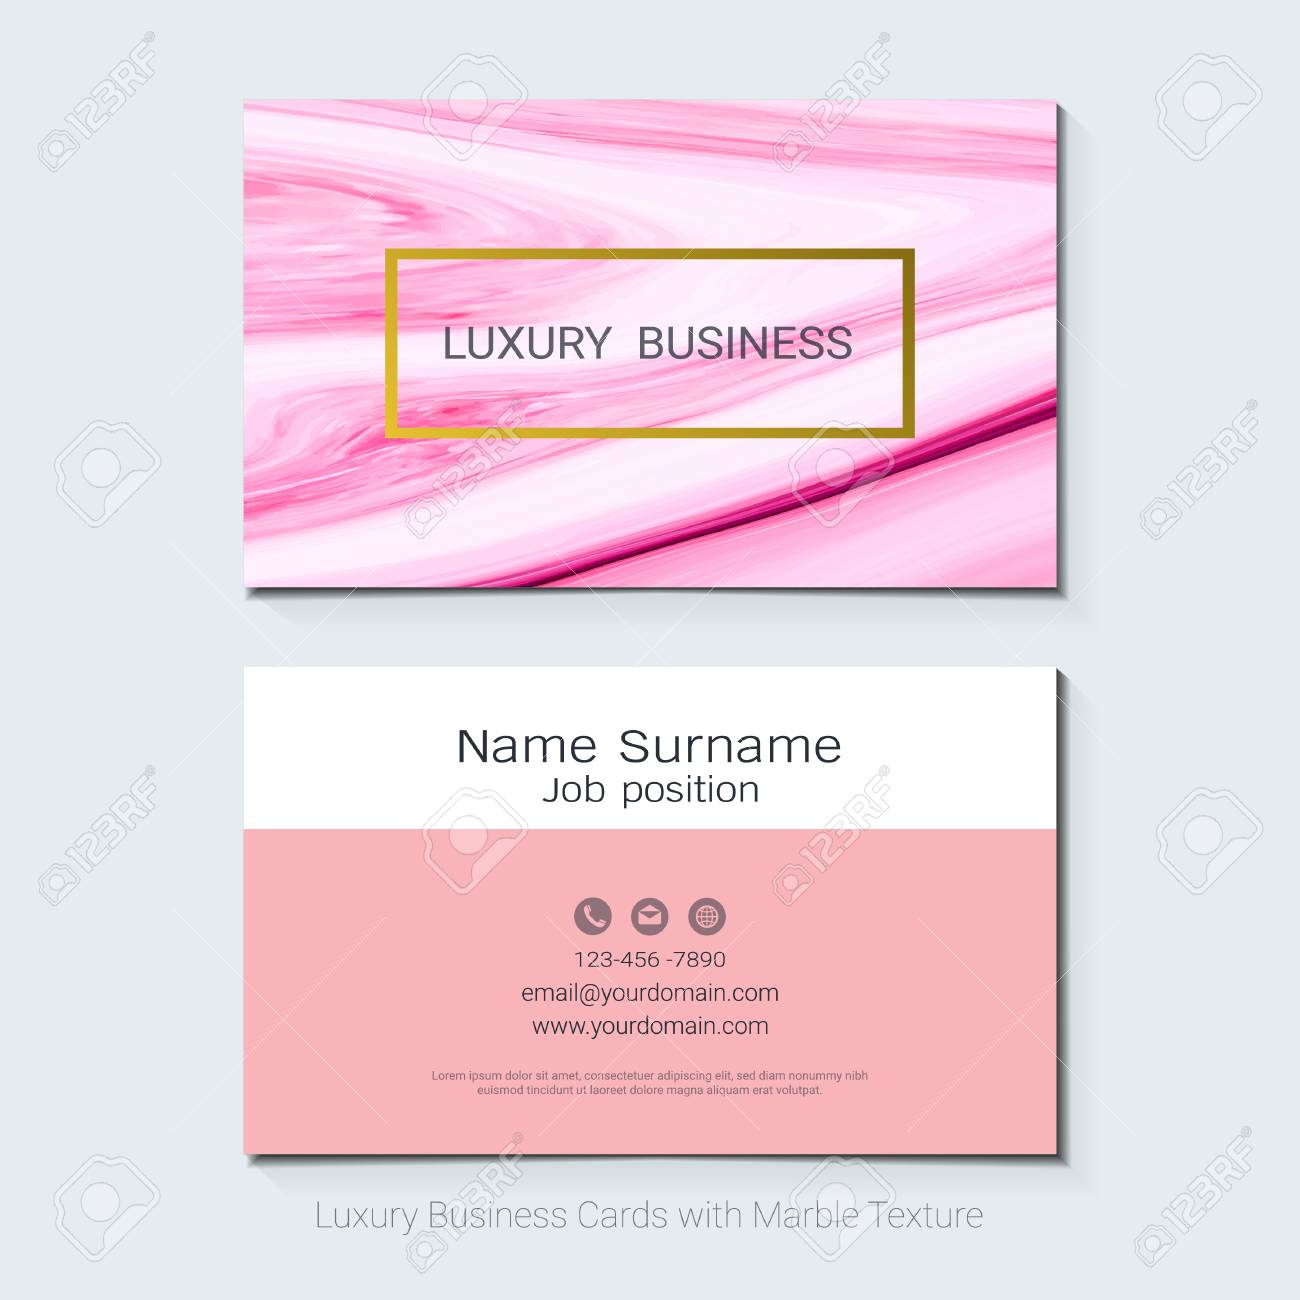 Luxury business cards vector template simple style also modern luxury business cards vector template simple style also modern and elegant with marbling texture imitation reheart Images